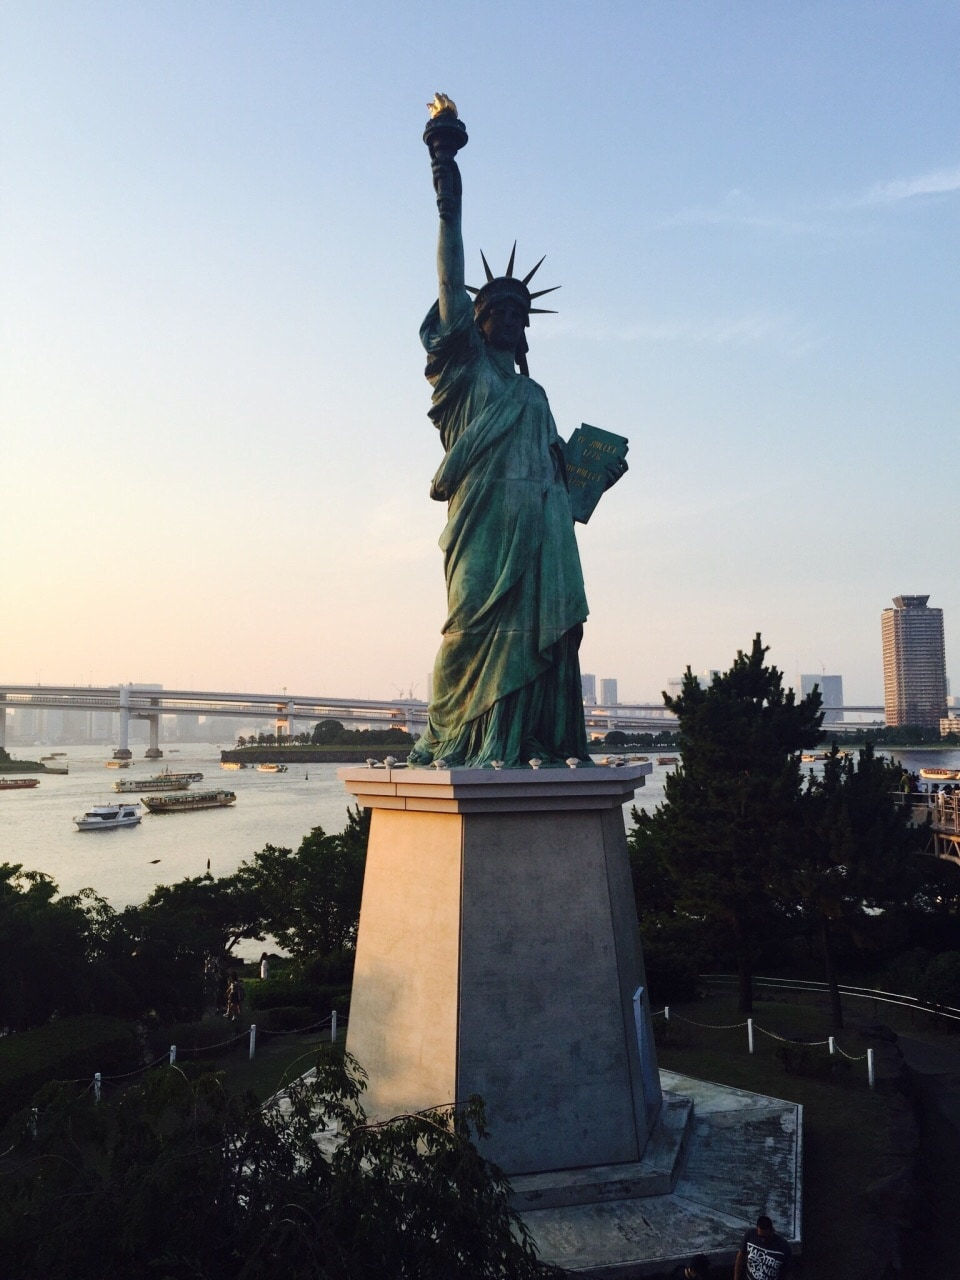 Odaiba Statue Of Liberty Tourist Attractions In Tokyo Tripcom